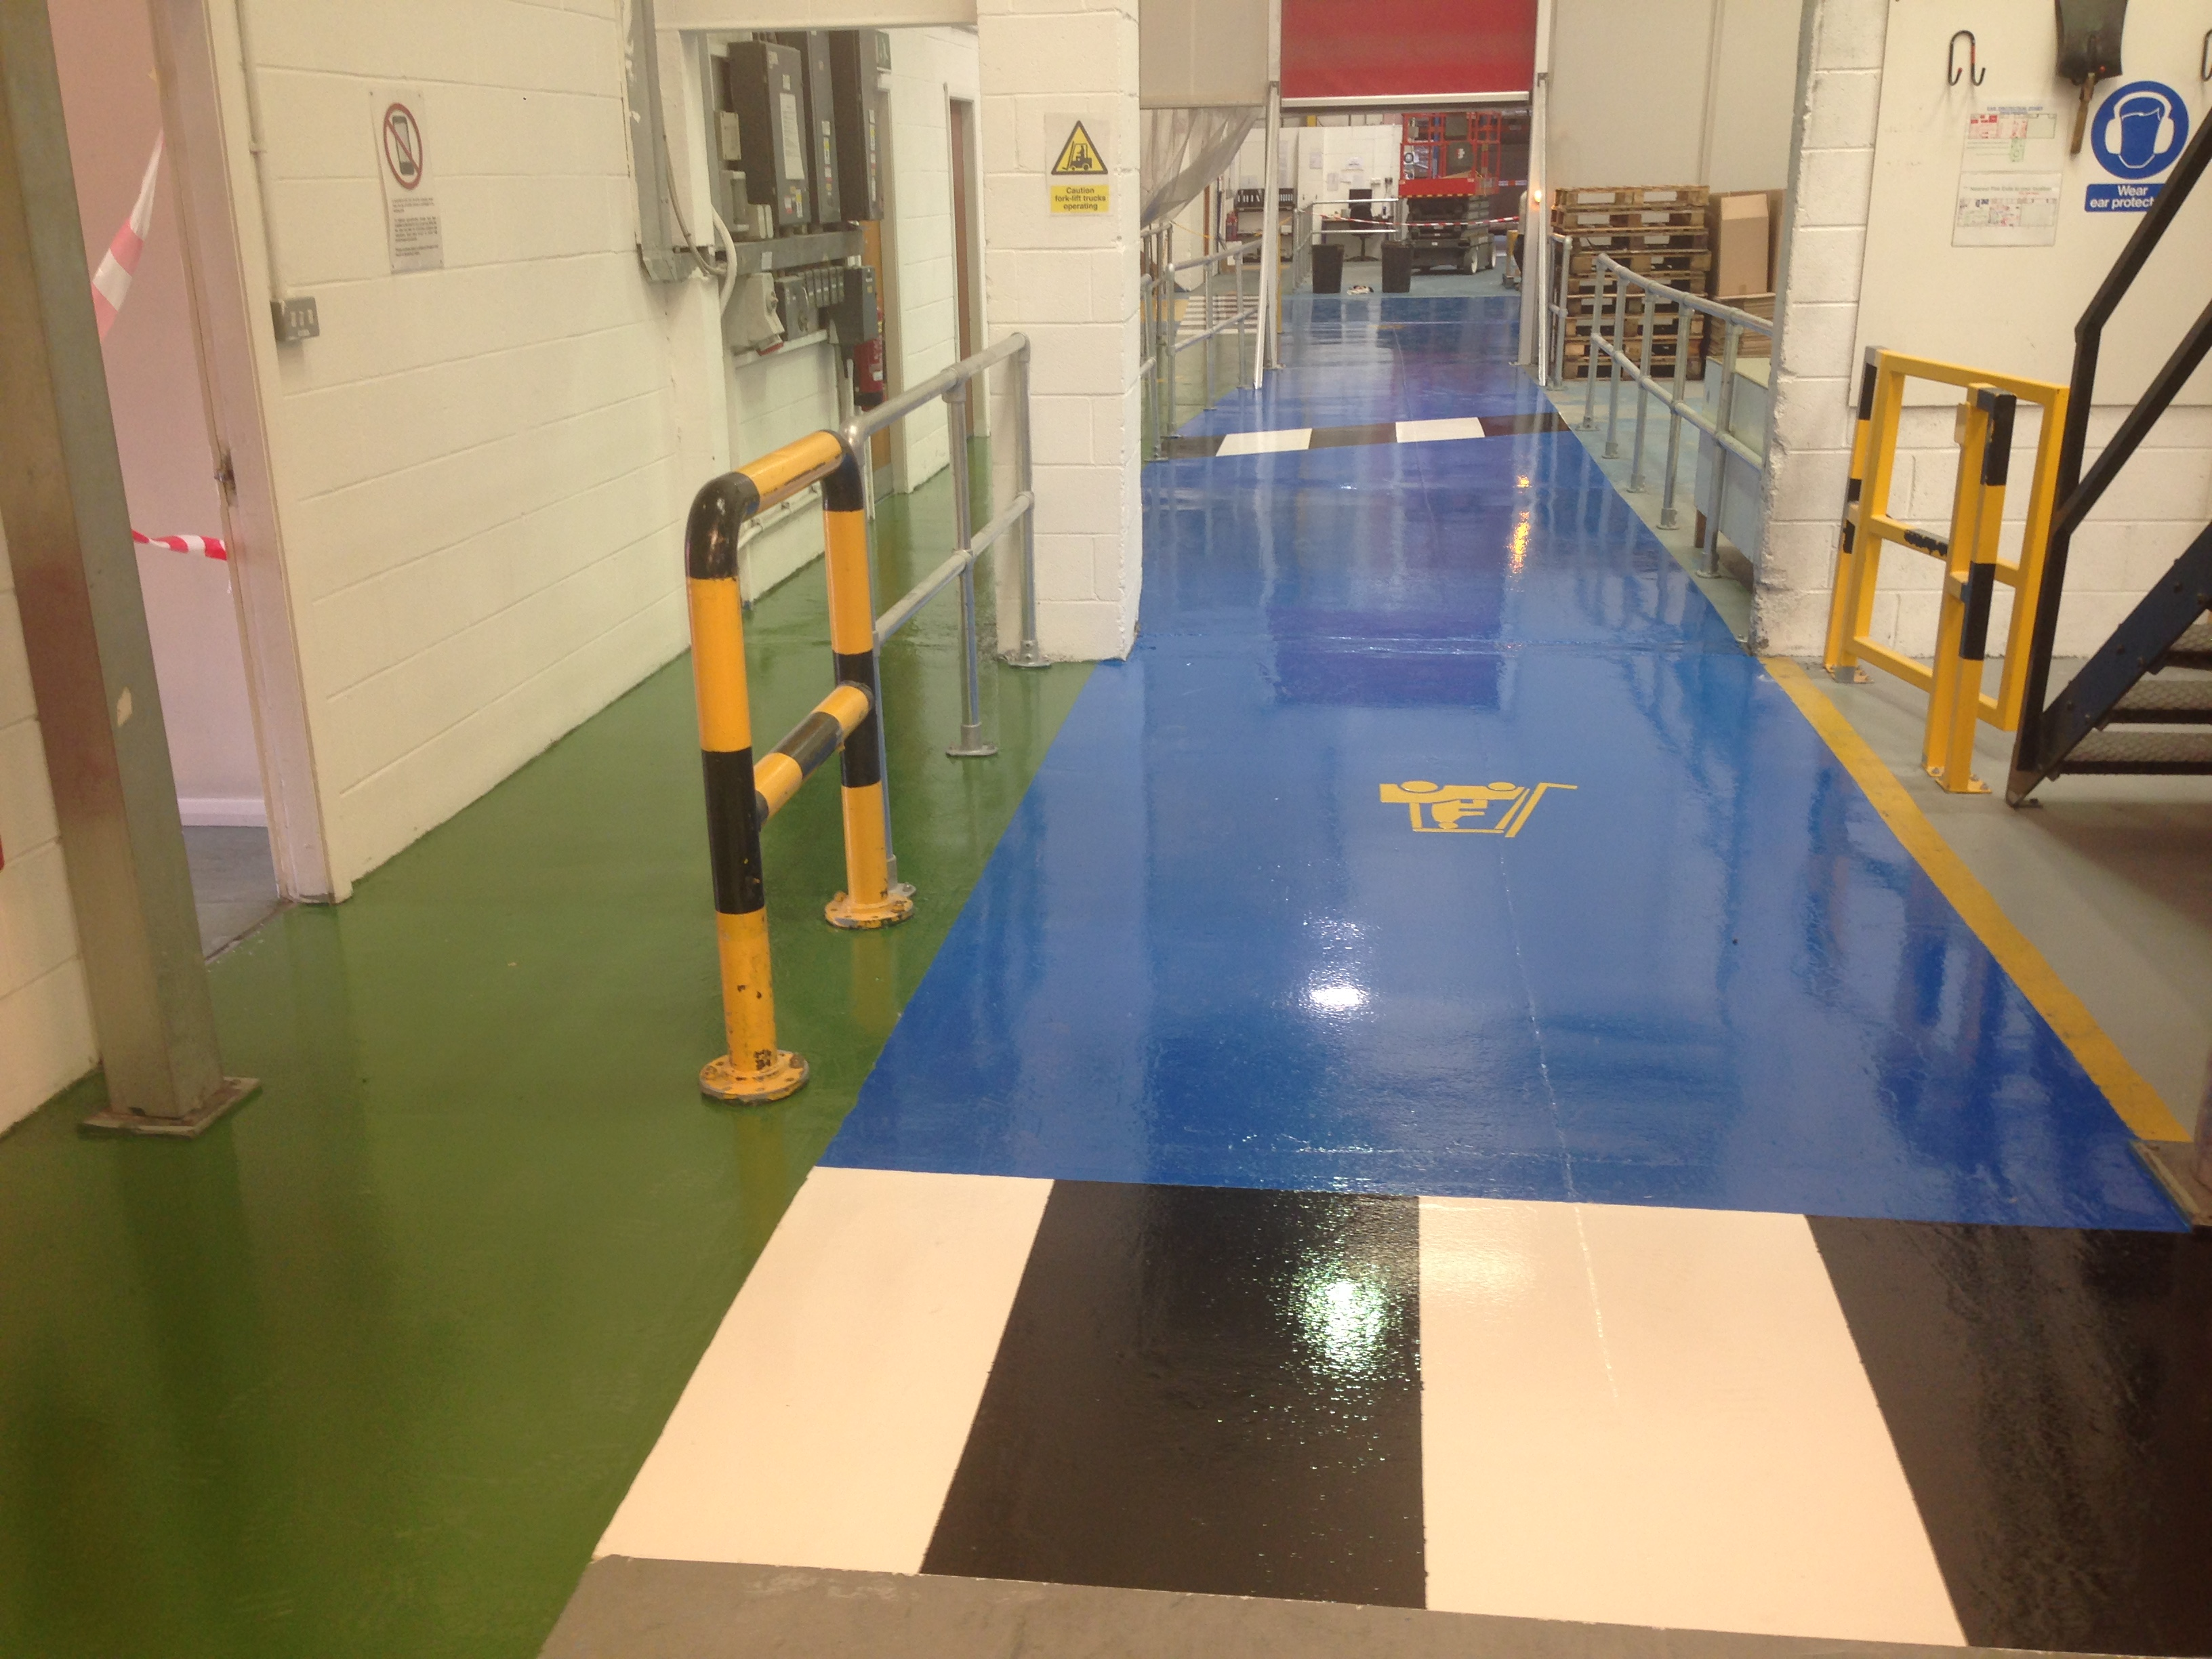 Epoxy coating resin flooring used to highlight areas